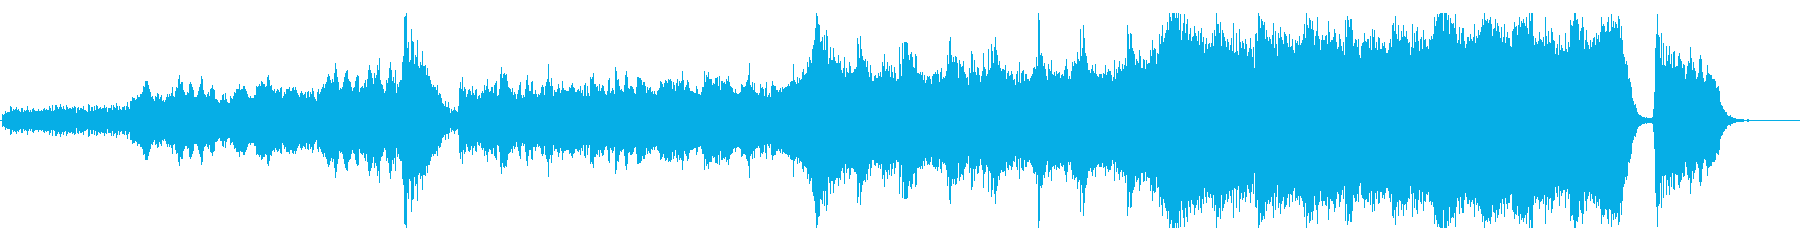 A hybrid exercise 1 where the excitement reaches its peak's reproduced waveform